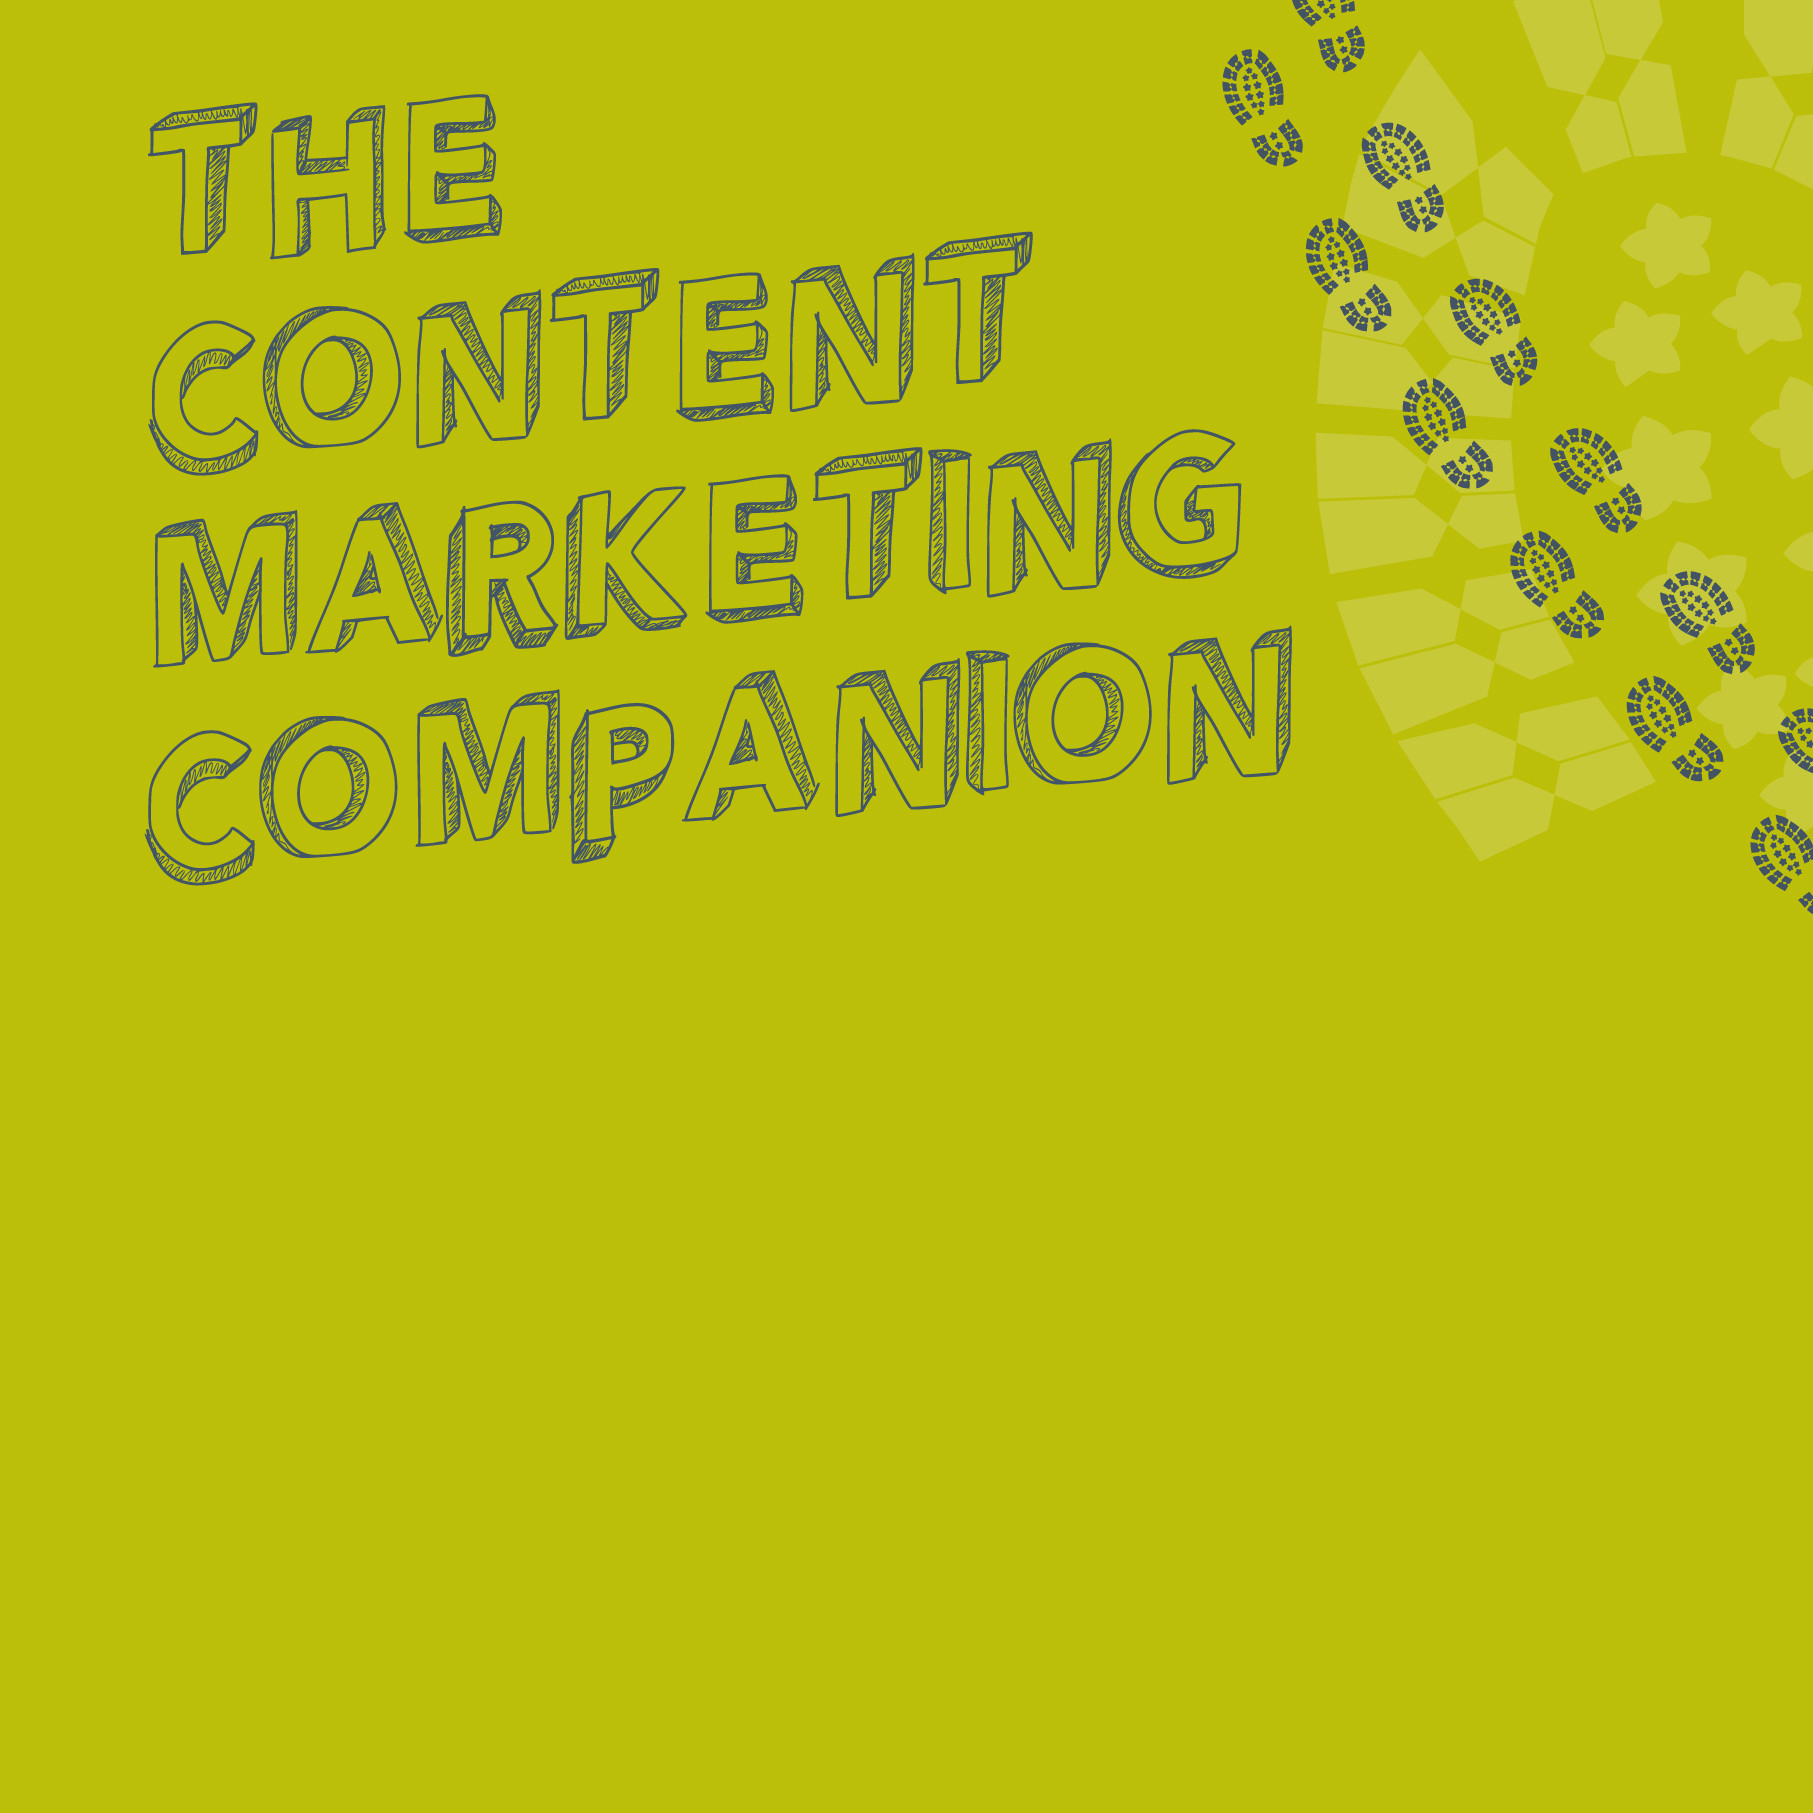 content marketing companies guide image